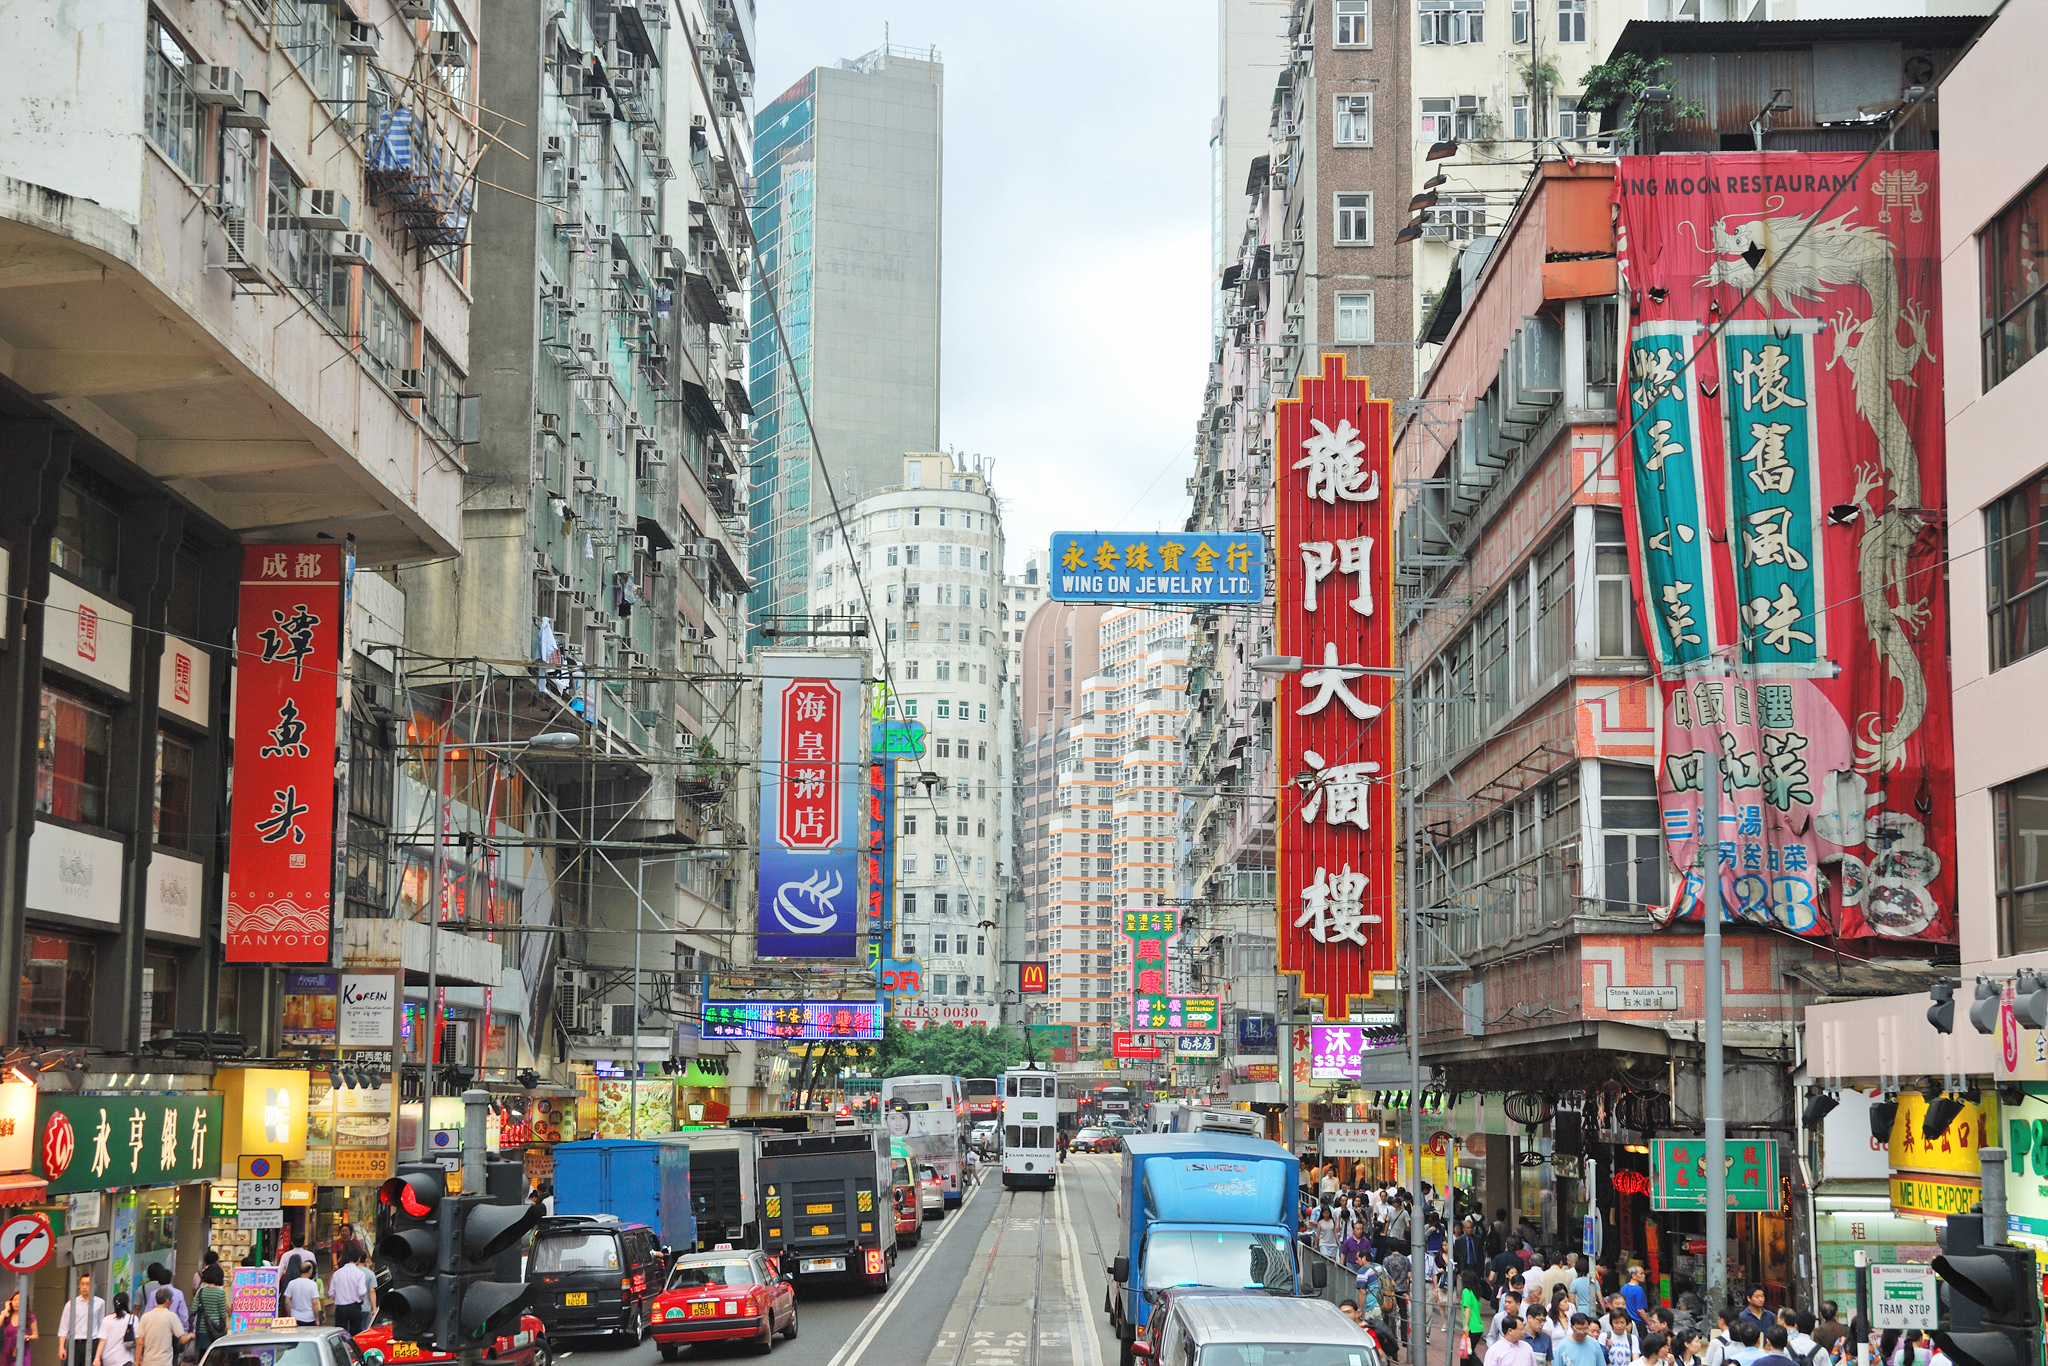 A view of Hong Kong's Central District.